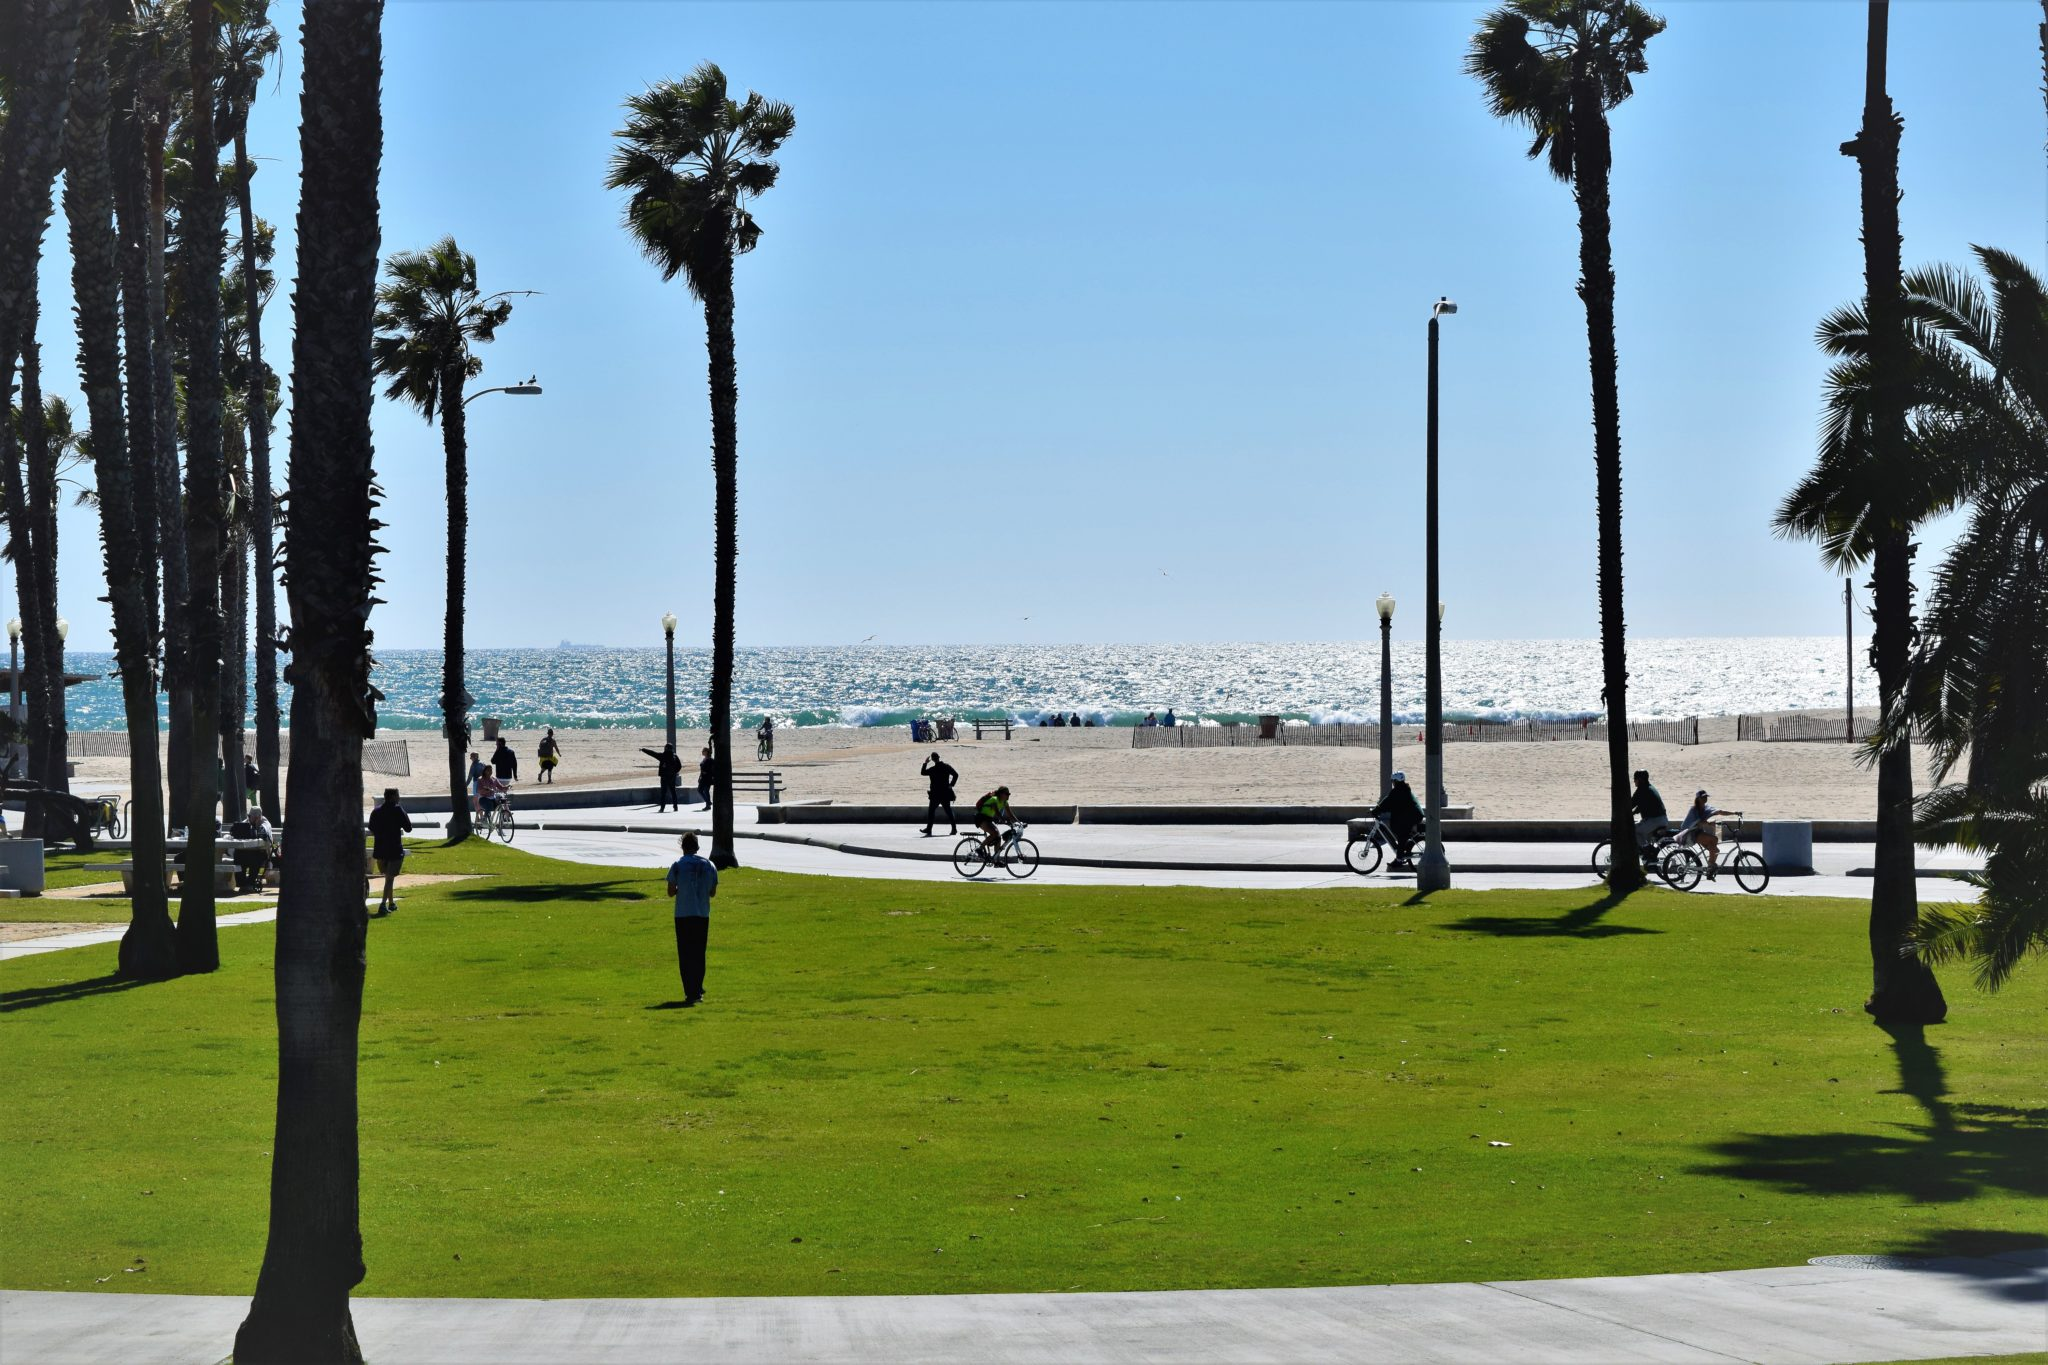 Santa Monica beach, hop on hop off bus los angeles